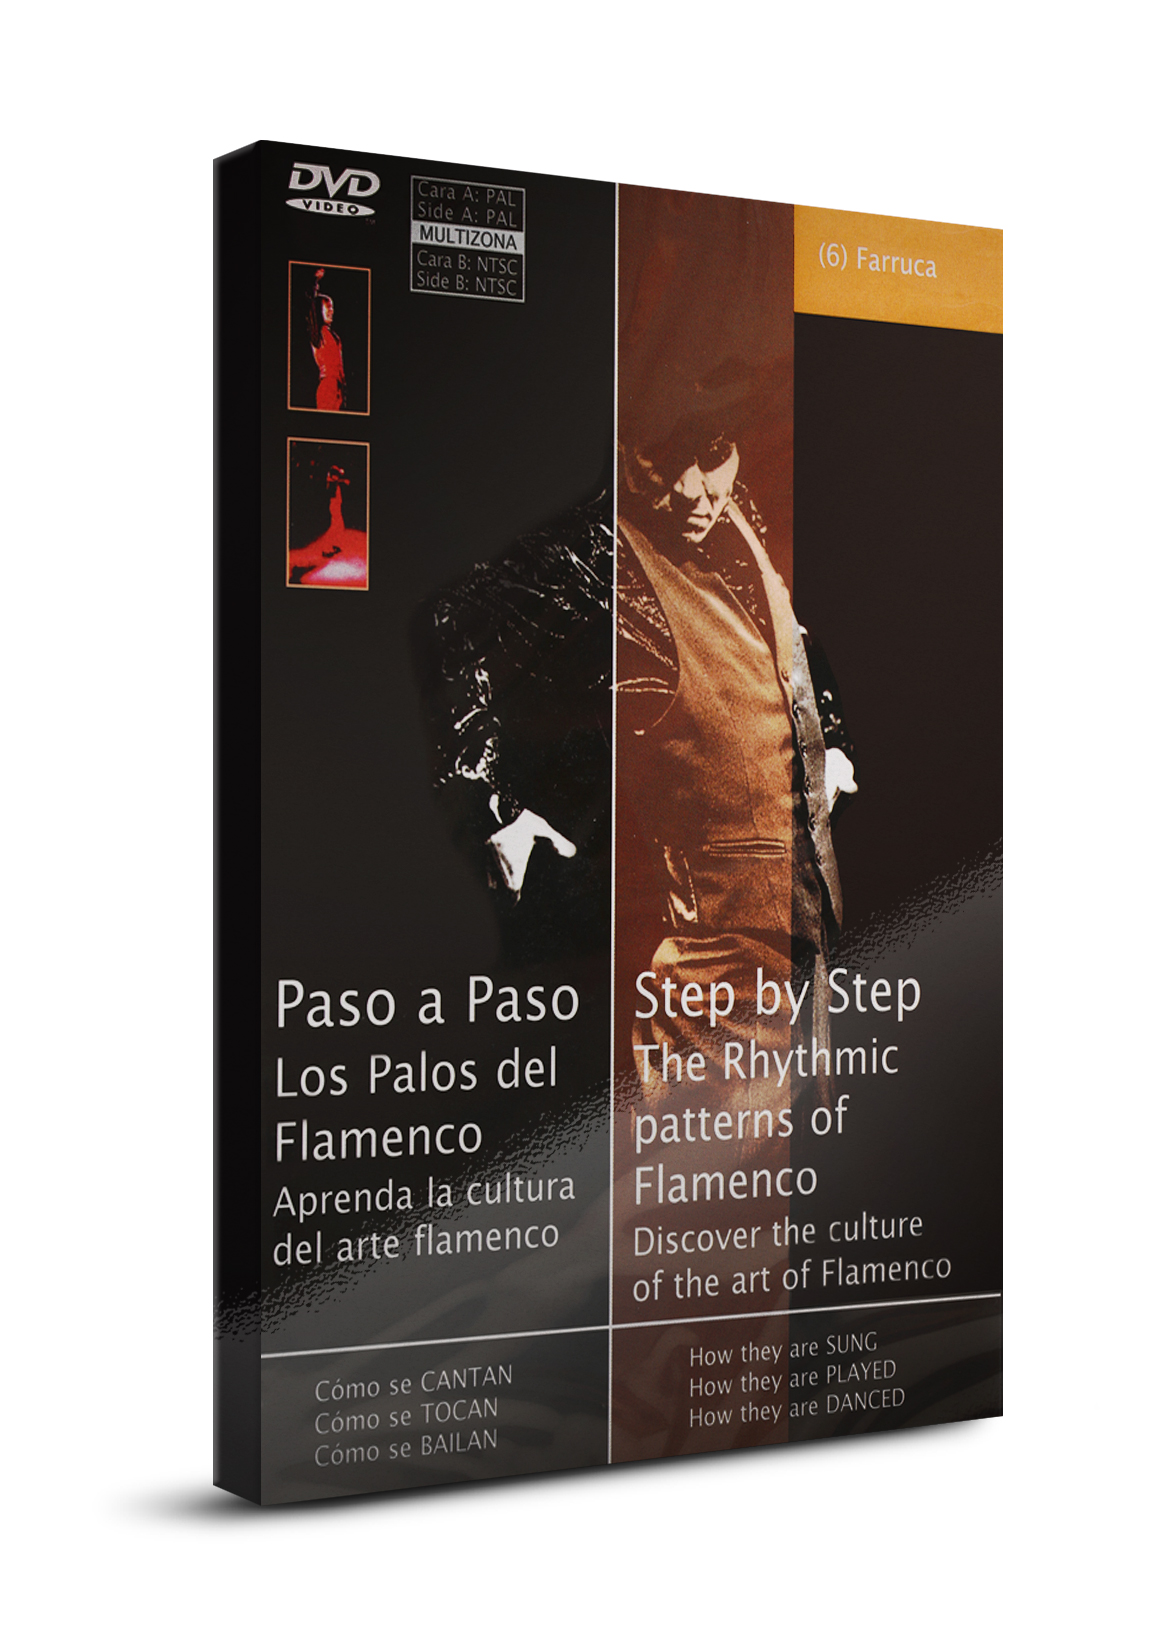 Flamenco dance classes Farruca DVD